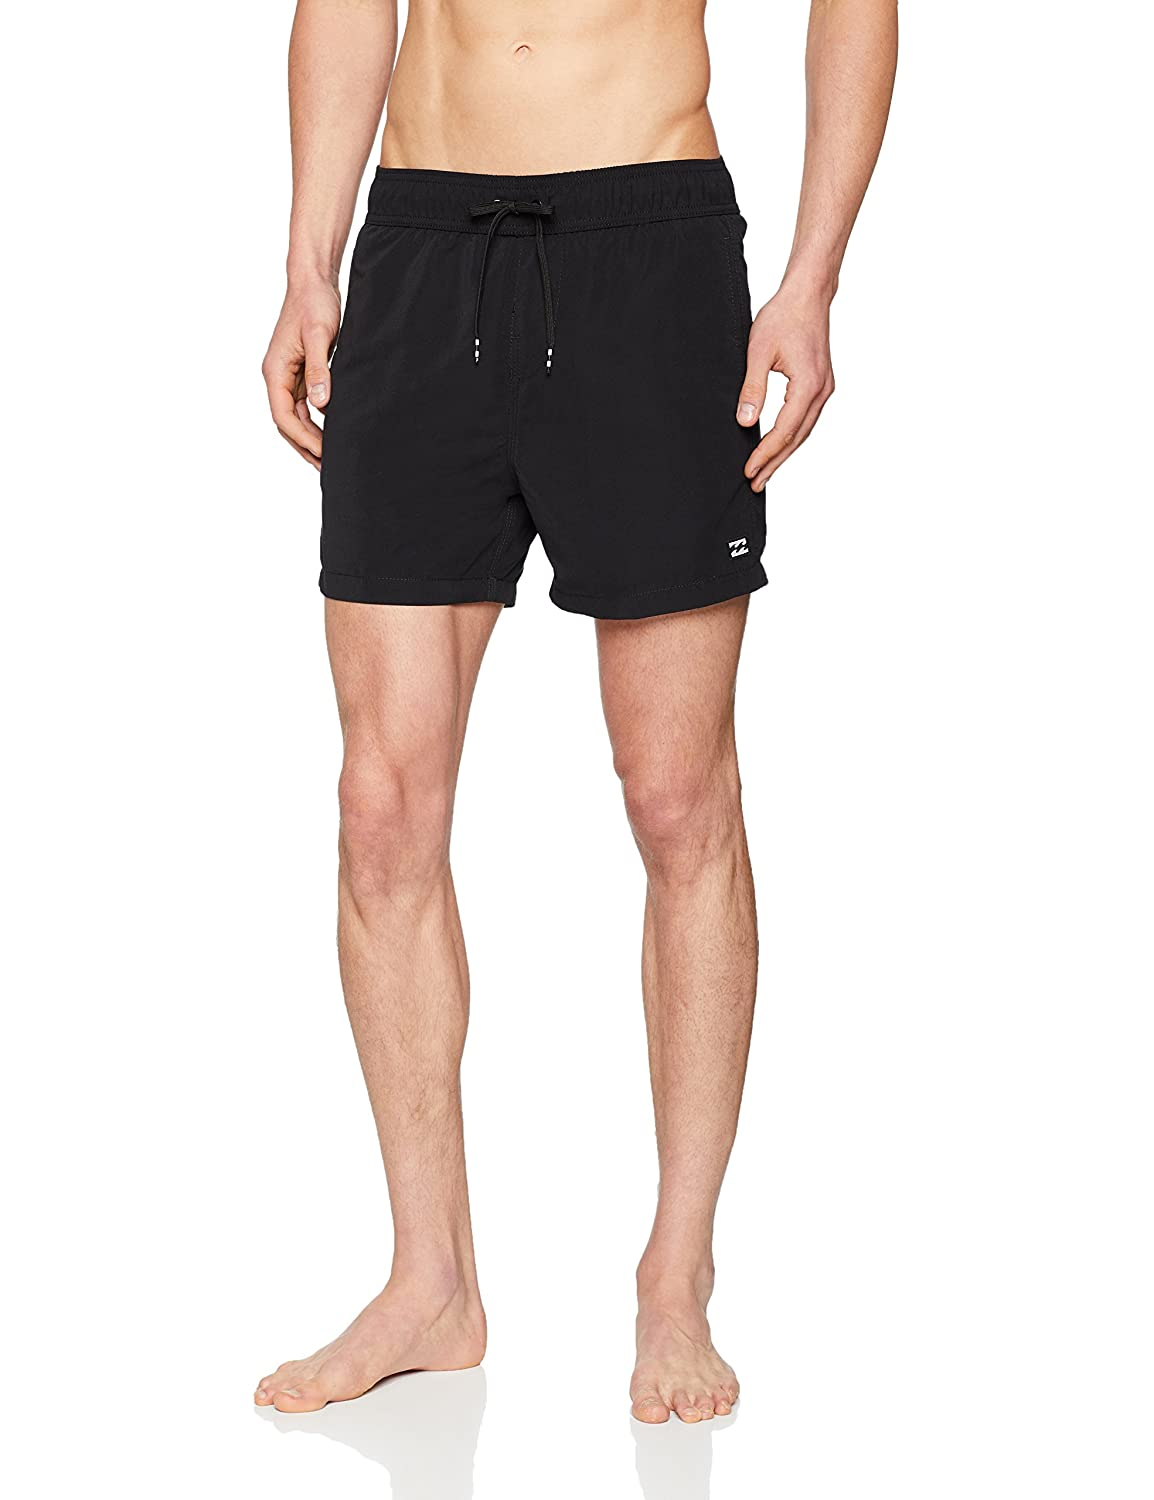 488640ed7ab83 Billabong All Day Layback 16 inch Boardshorts - Soft Surf Suede Fabric and  Elasticated Waist Black,Small: Amazon.co.uk: Sports & Outdoors